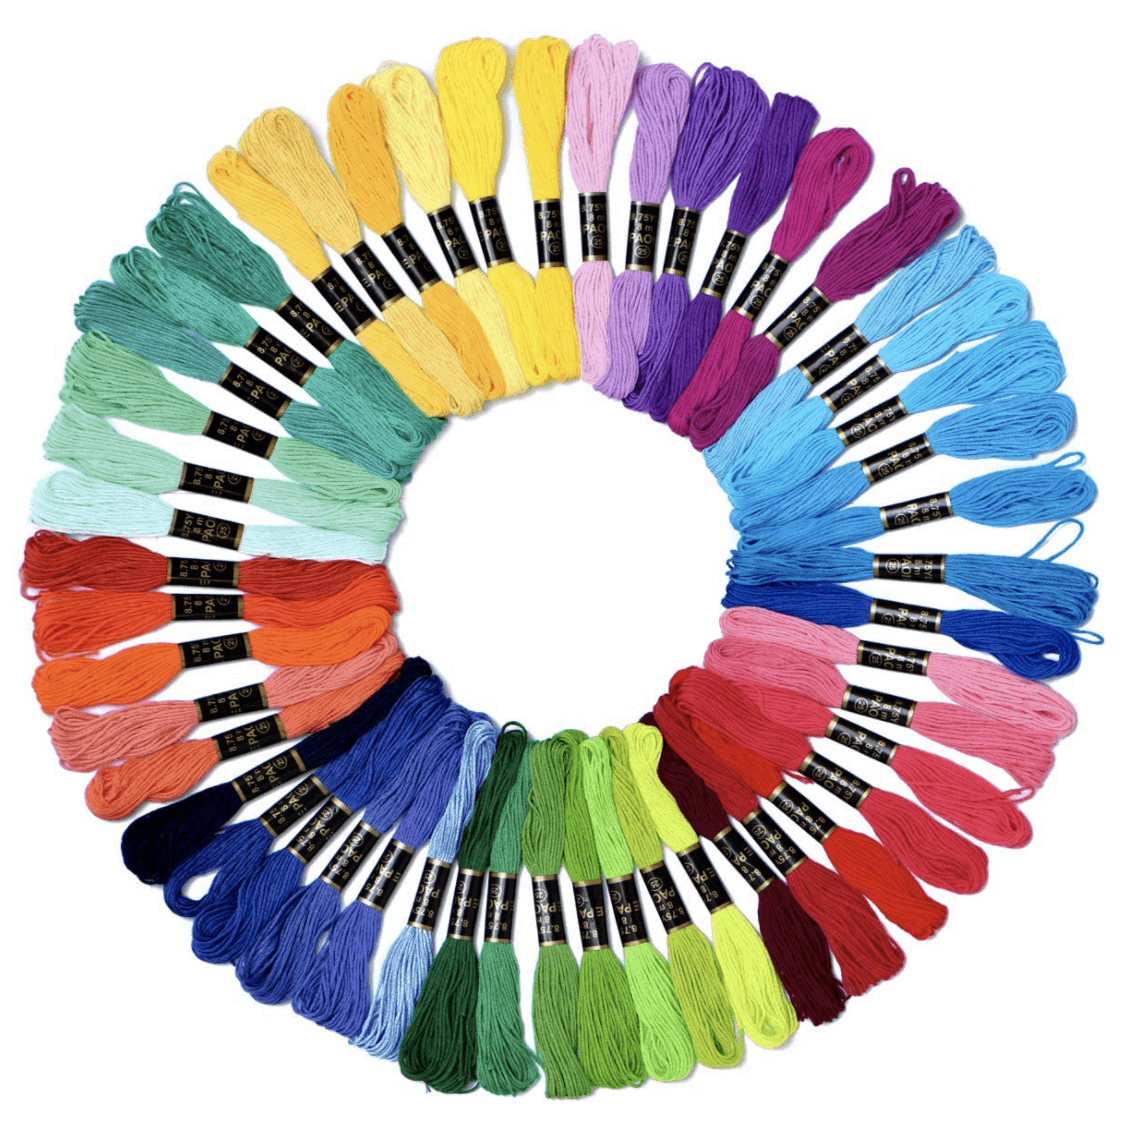 embroidery thread in colors